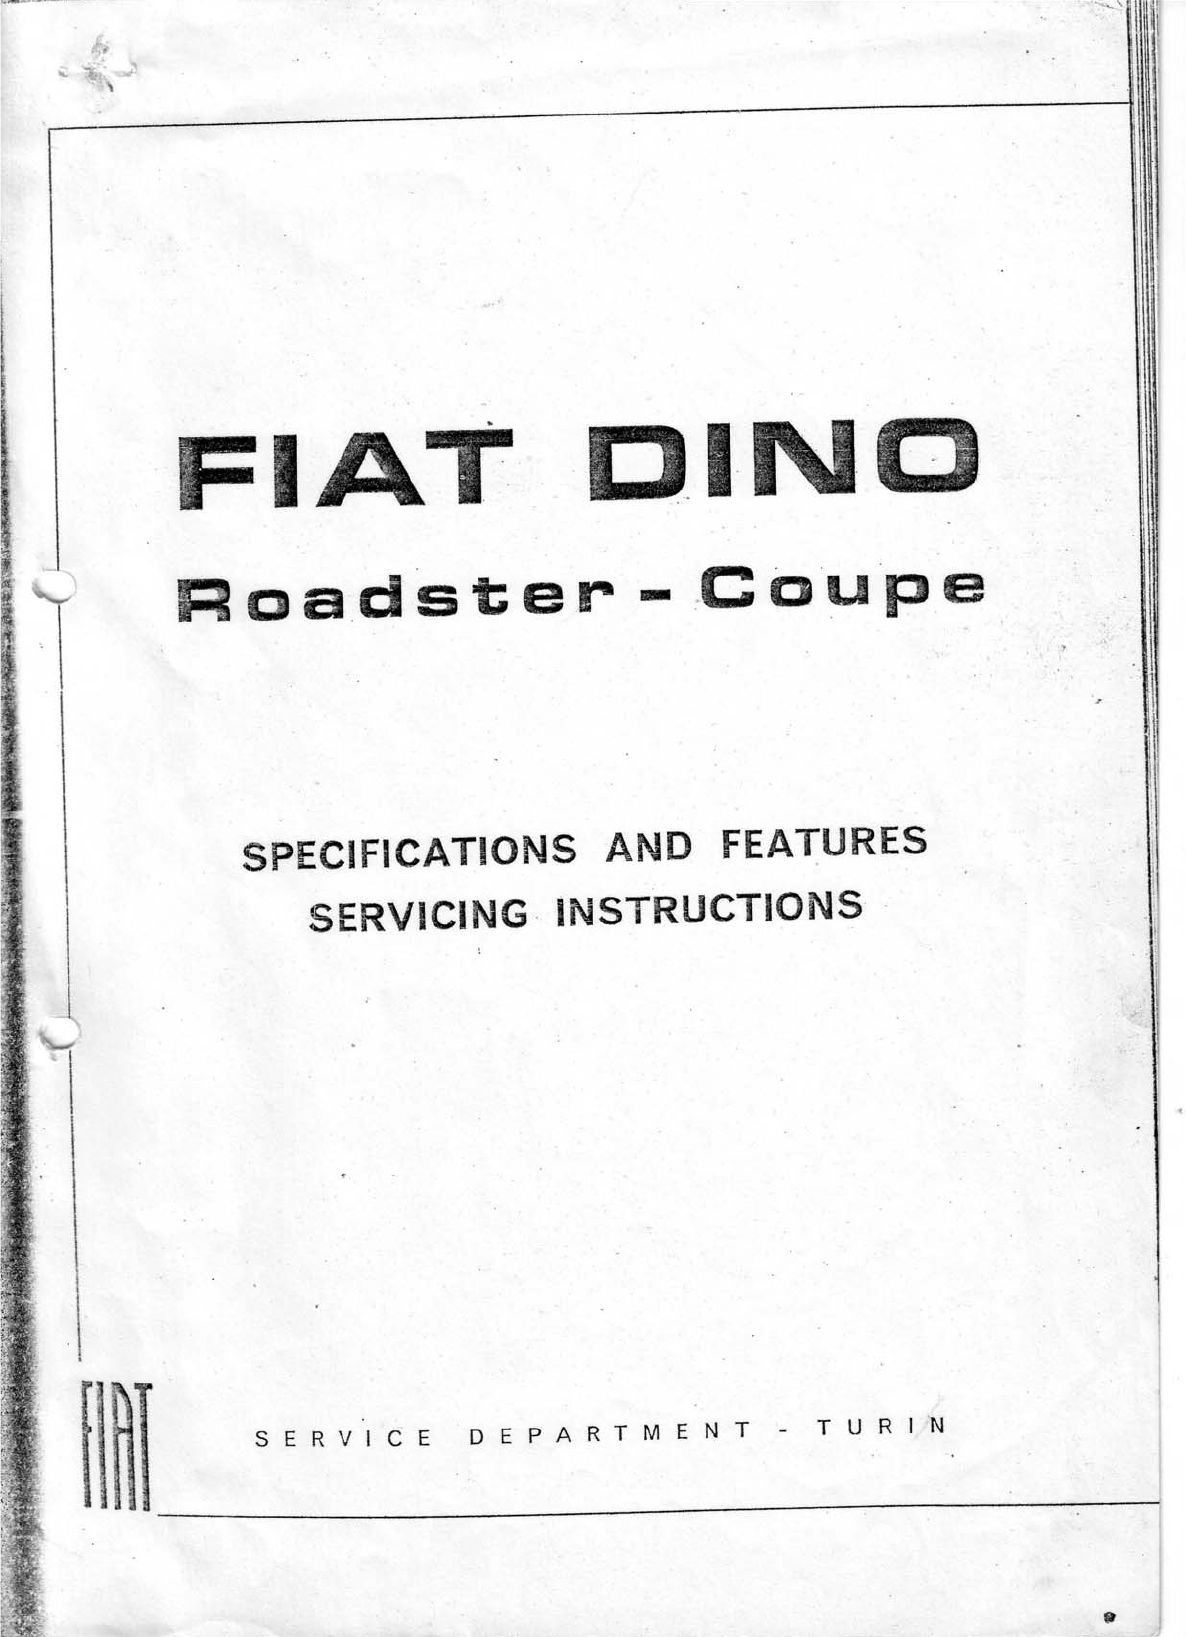 See our other Fiat Dino Manuals: